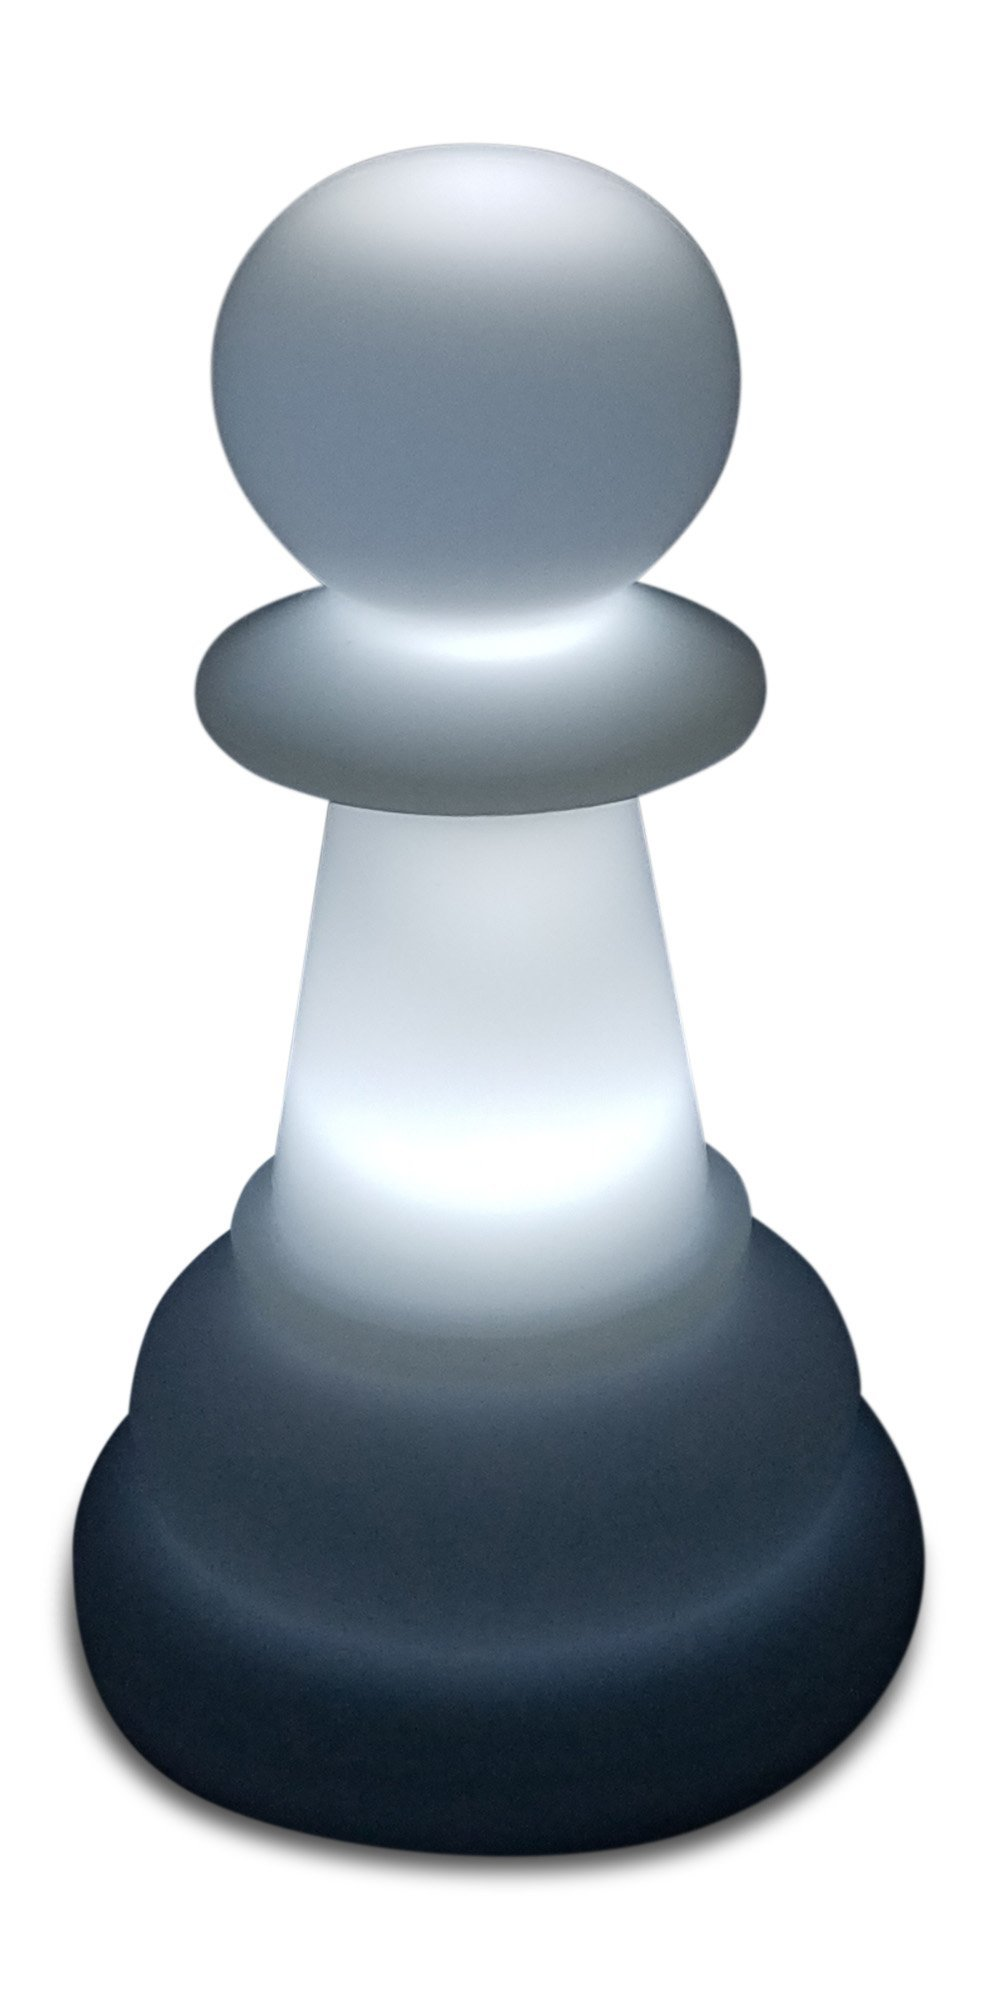 MegaChess 16 Inch Premium Plastic Pawn Light-Up Giant Chess Piece - White | Default Title | GiantChessUSA